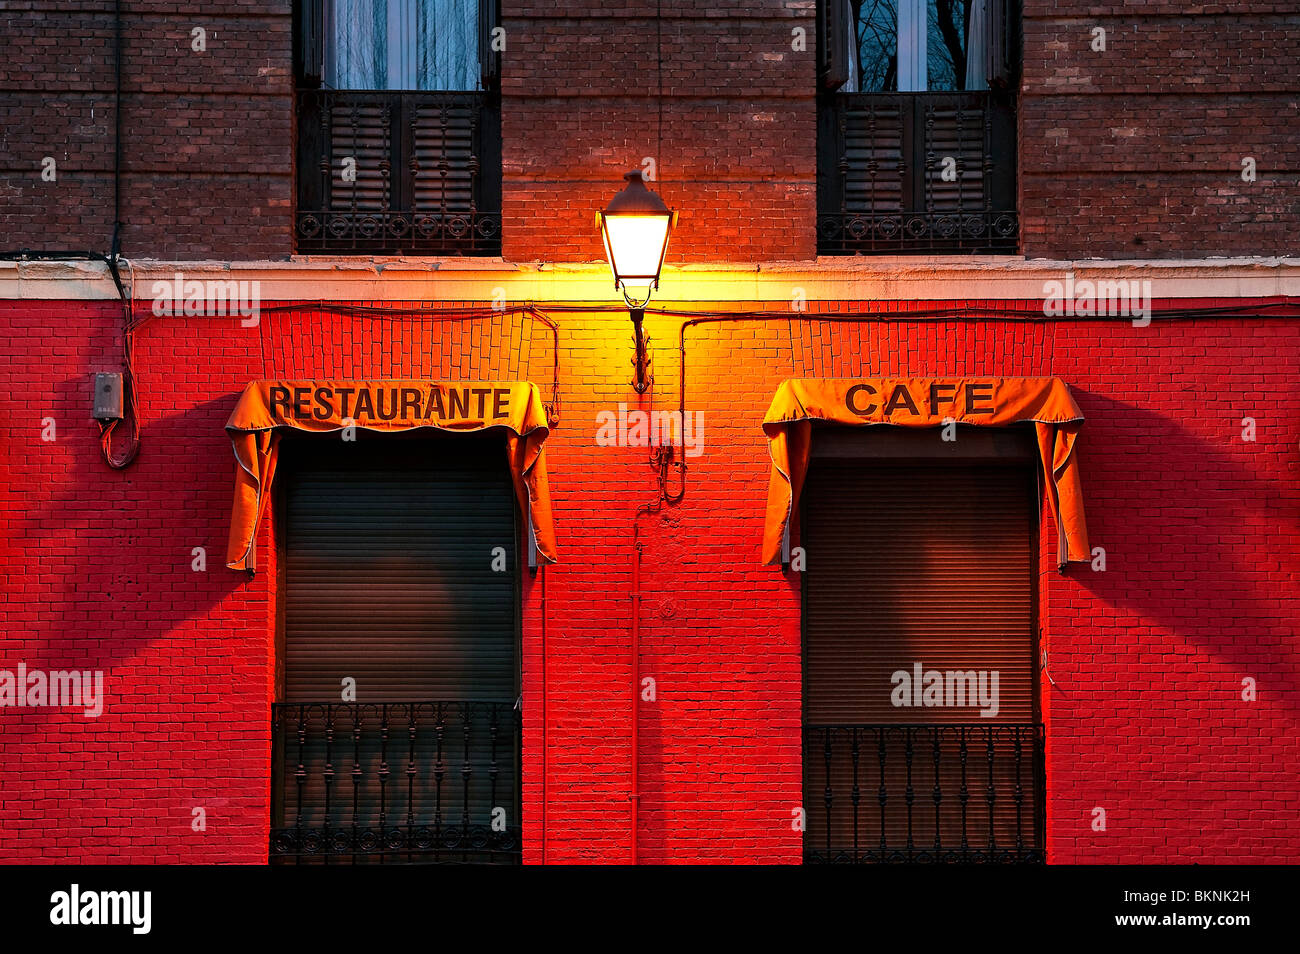 Street lamp and restaurant, Madrid, Spain - Stock Image